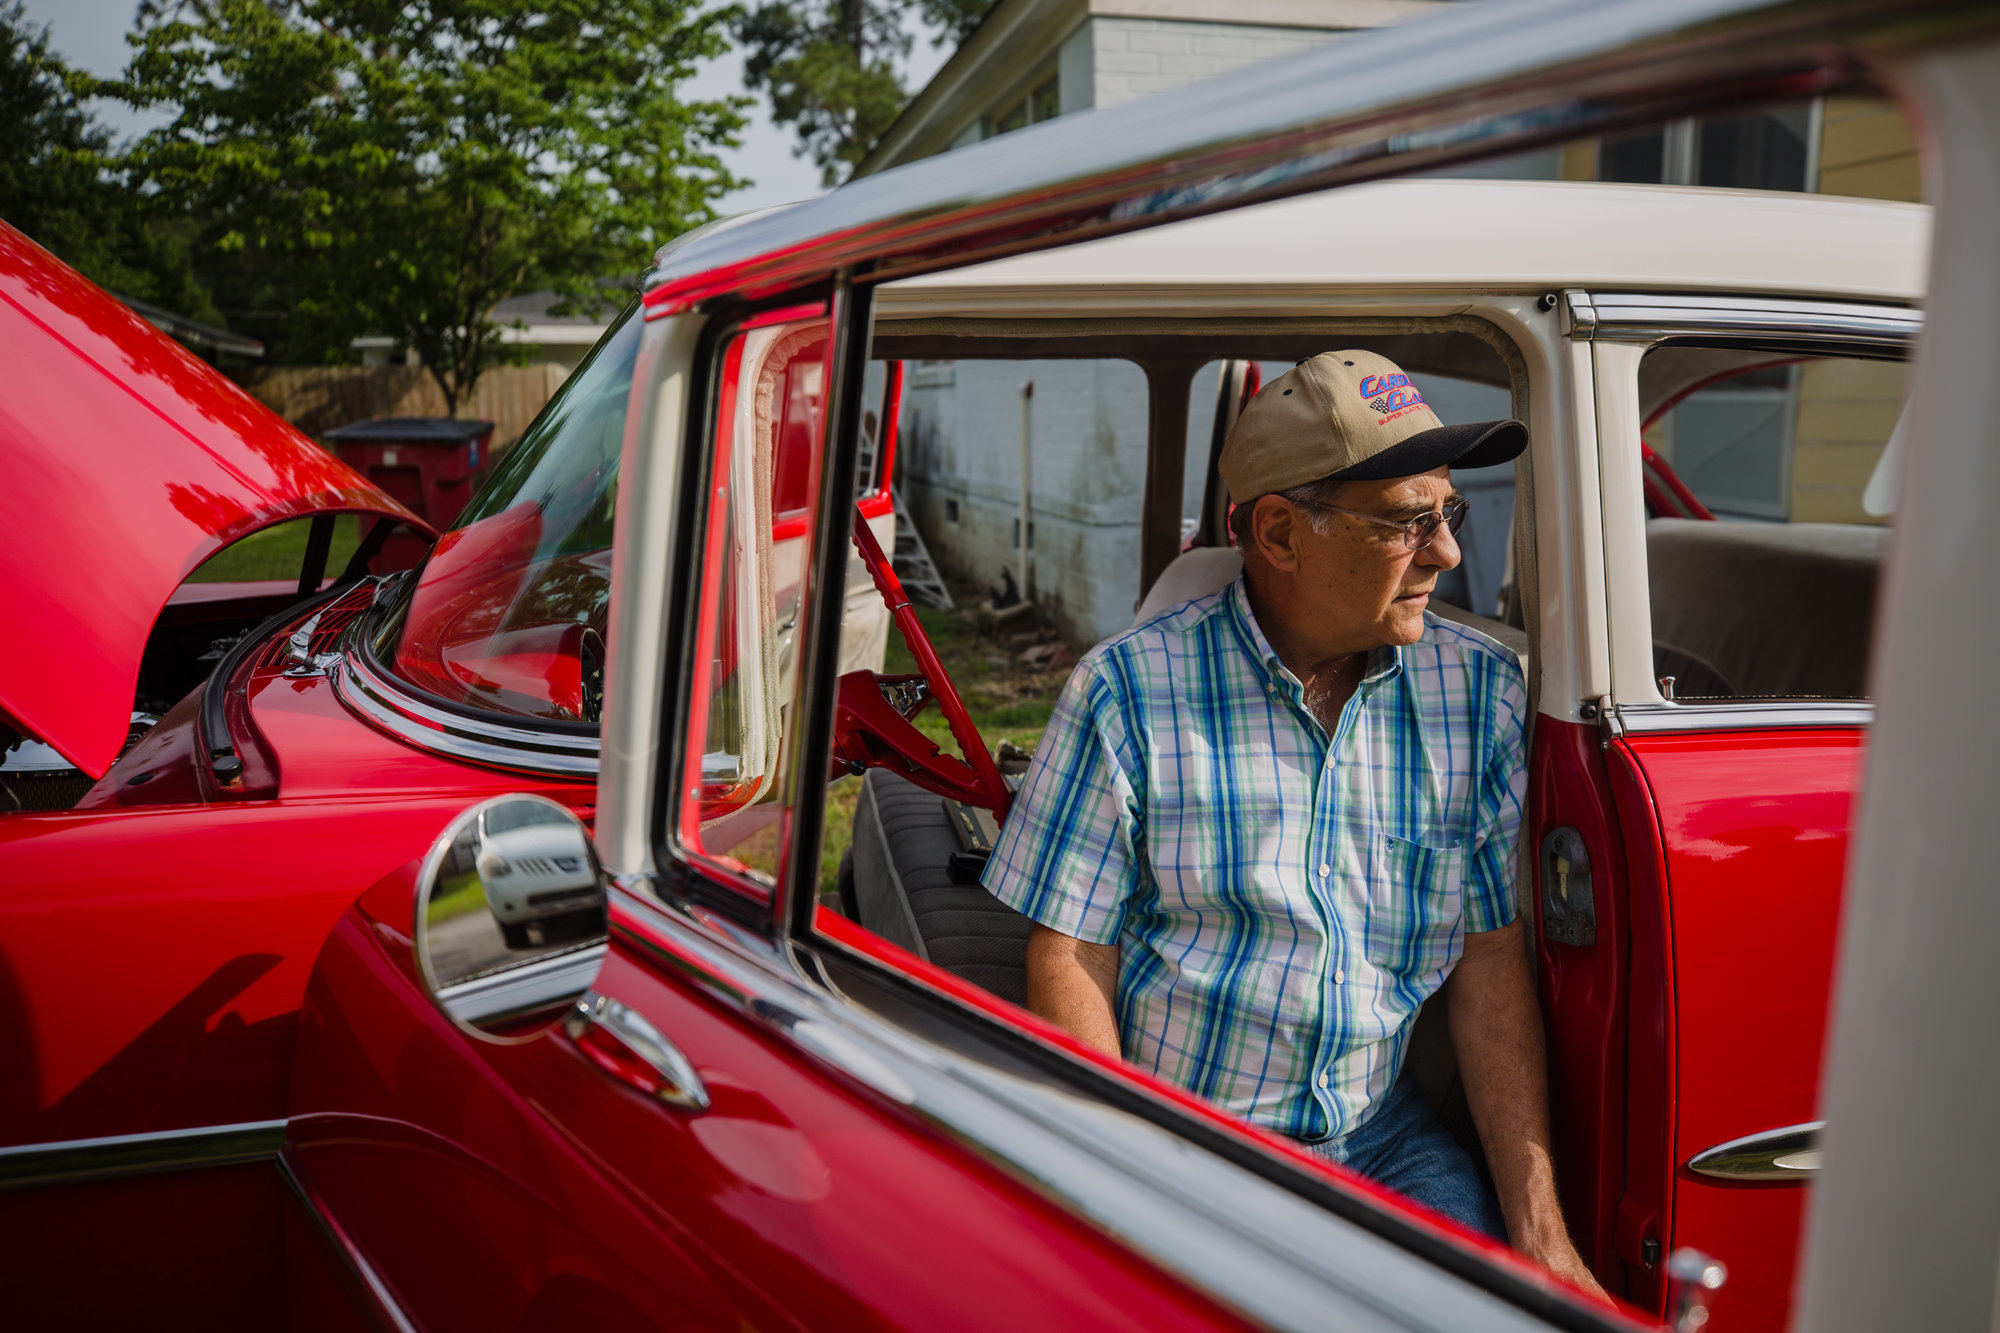 Harold Hodge sits in the front seat of his '55 Chevrolet Bel Air, which he bought in 1965. He worked as a mechanic for decades and restored the family car, which he now brings to car shows. His son, Glenn, is a fourth-generation mechanic.